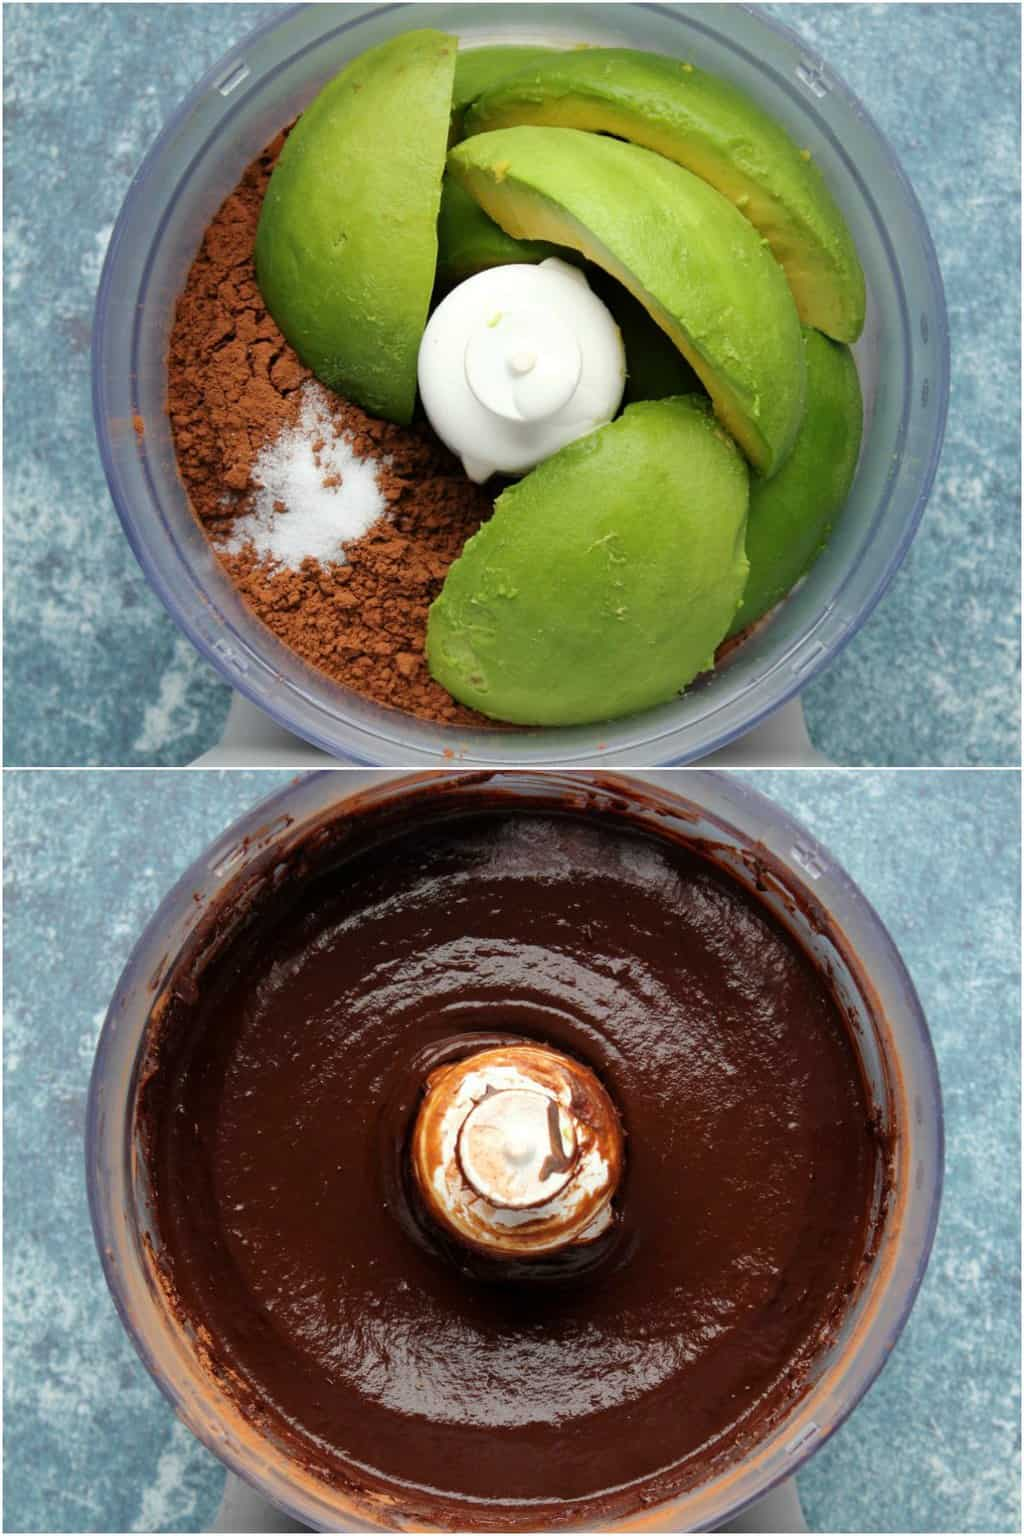 Step by step process photo collage of making vegan chocolate avocado mousse.